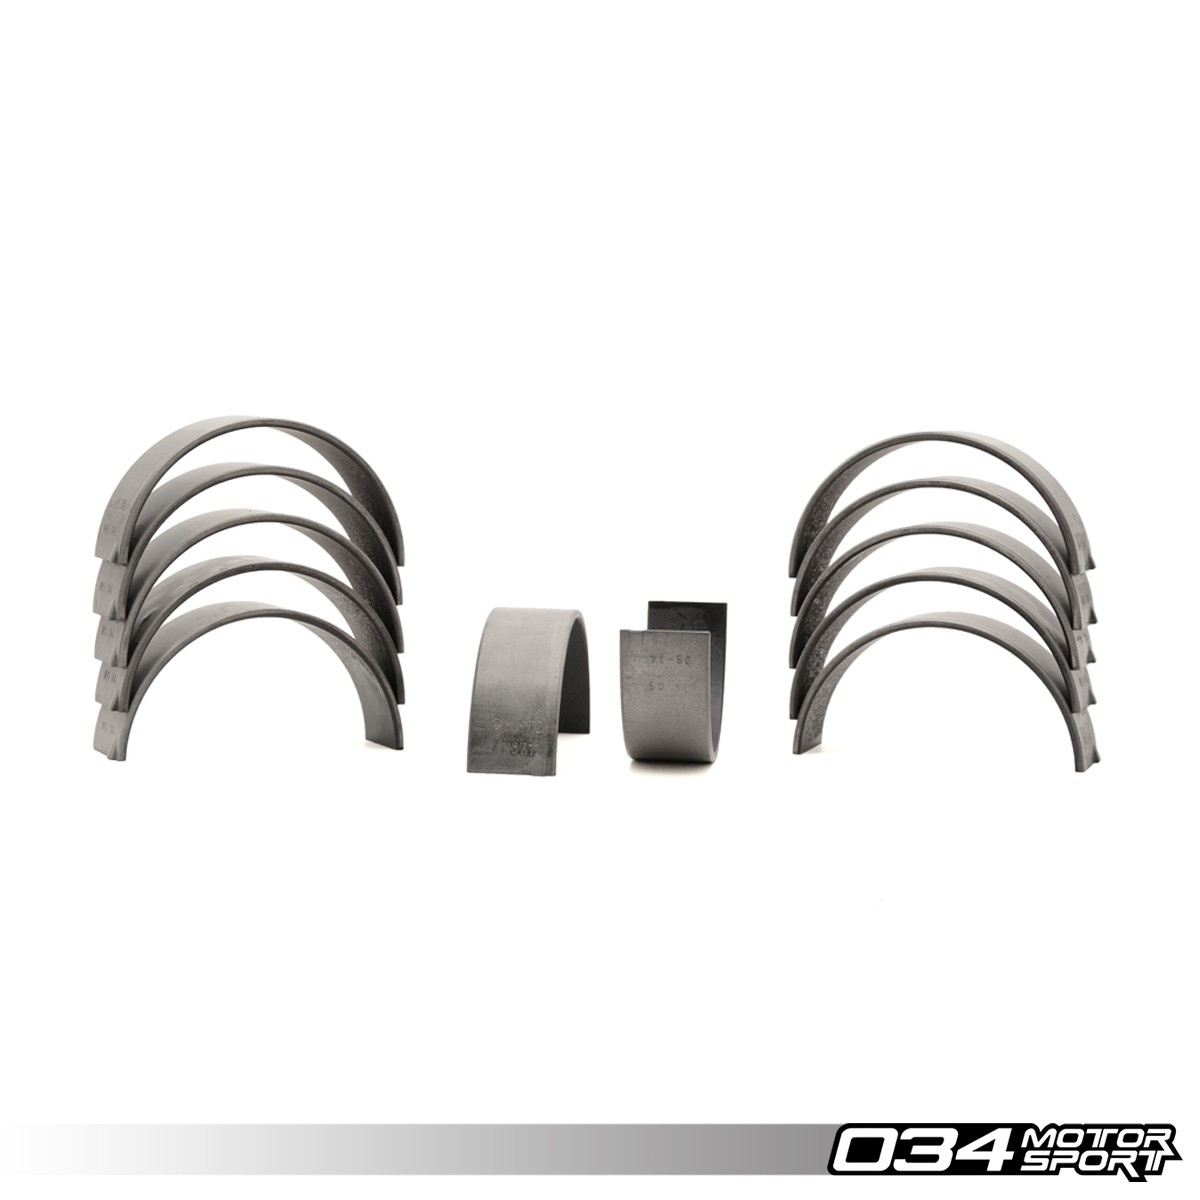 Rod Bearing Set, Coated, Audi V6 and 2.7T | 034-202-1012